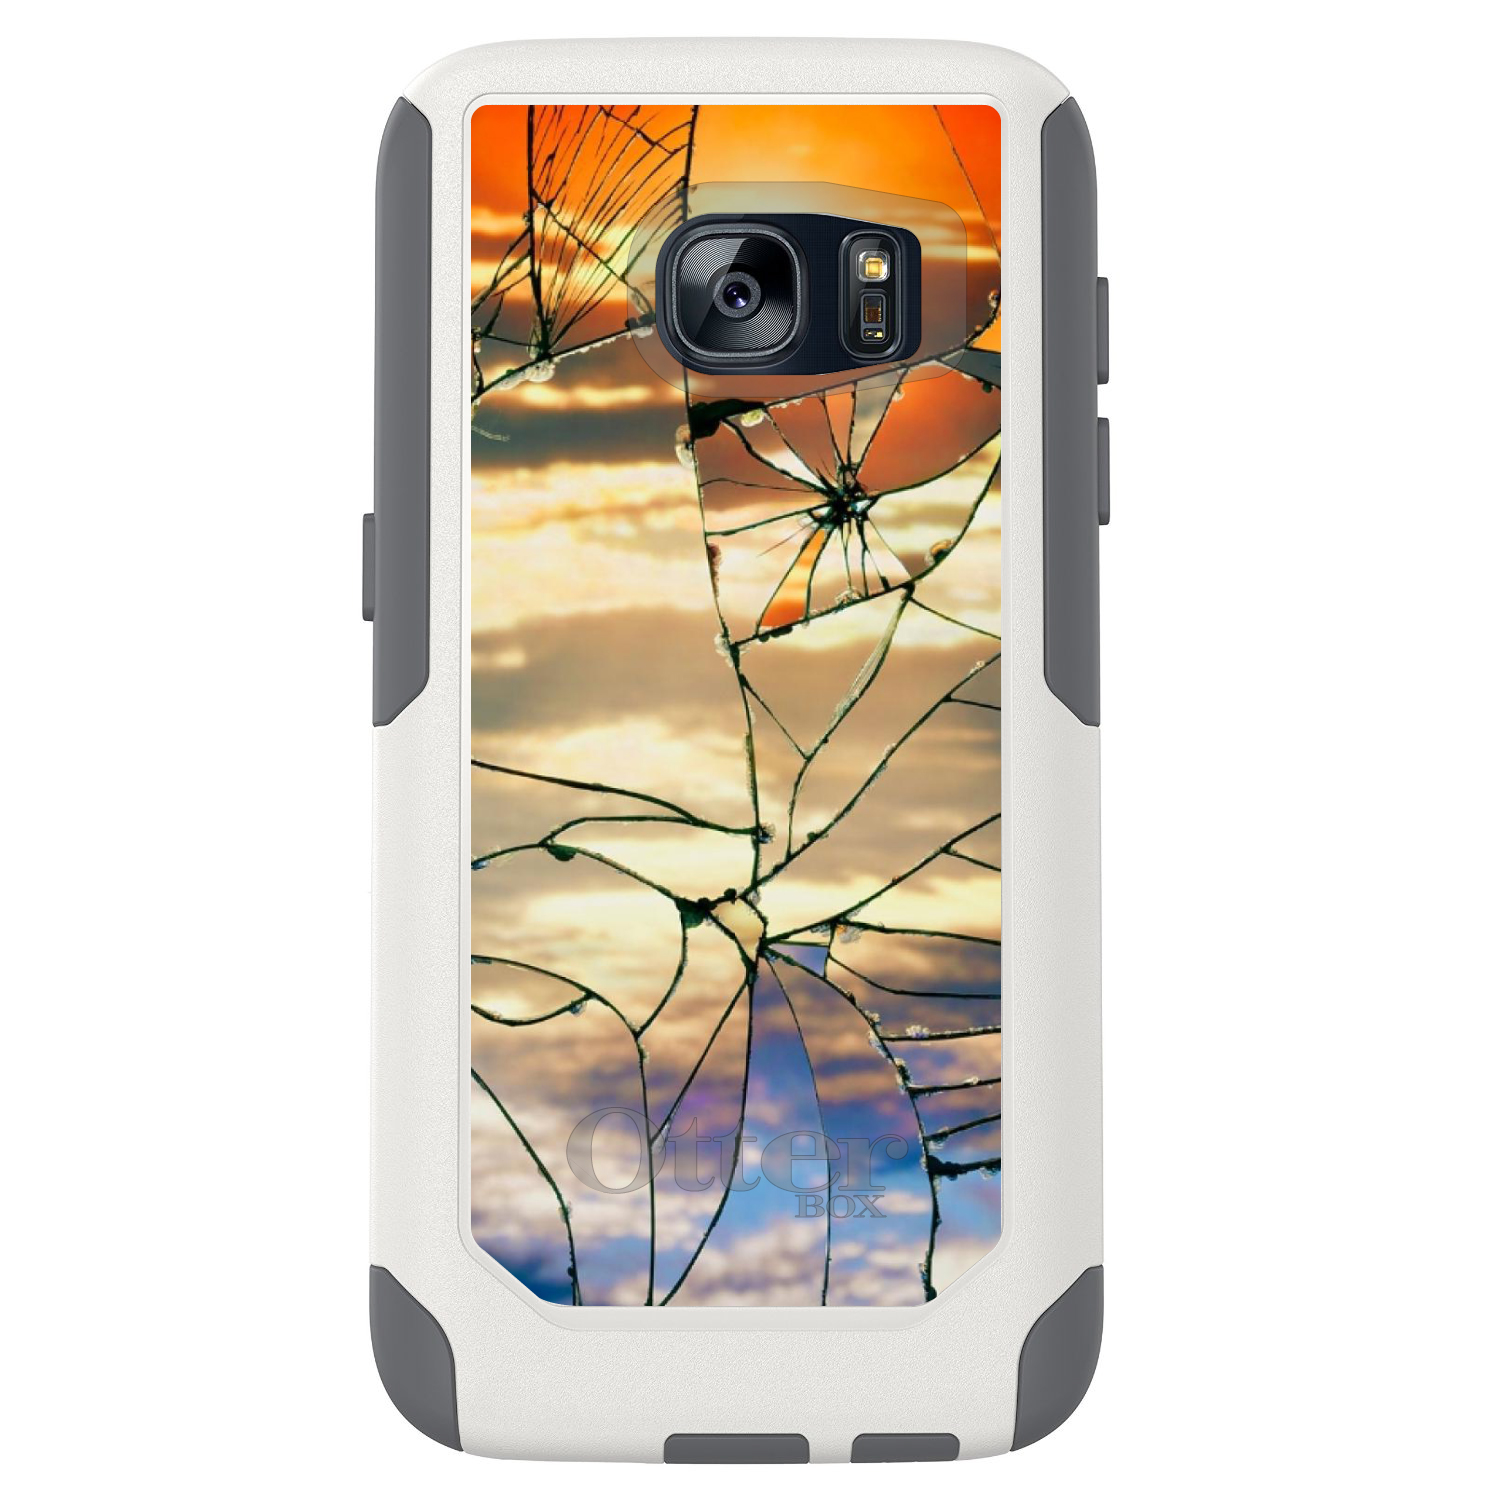 DistinctInk™ Custom White OtterBox Commuter Series Case for Samsung Galaxy S7 - Shattered Glass Sunrise